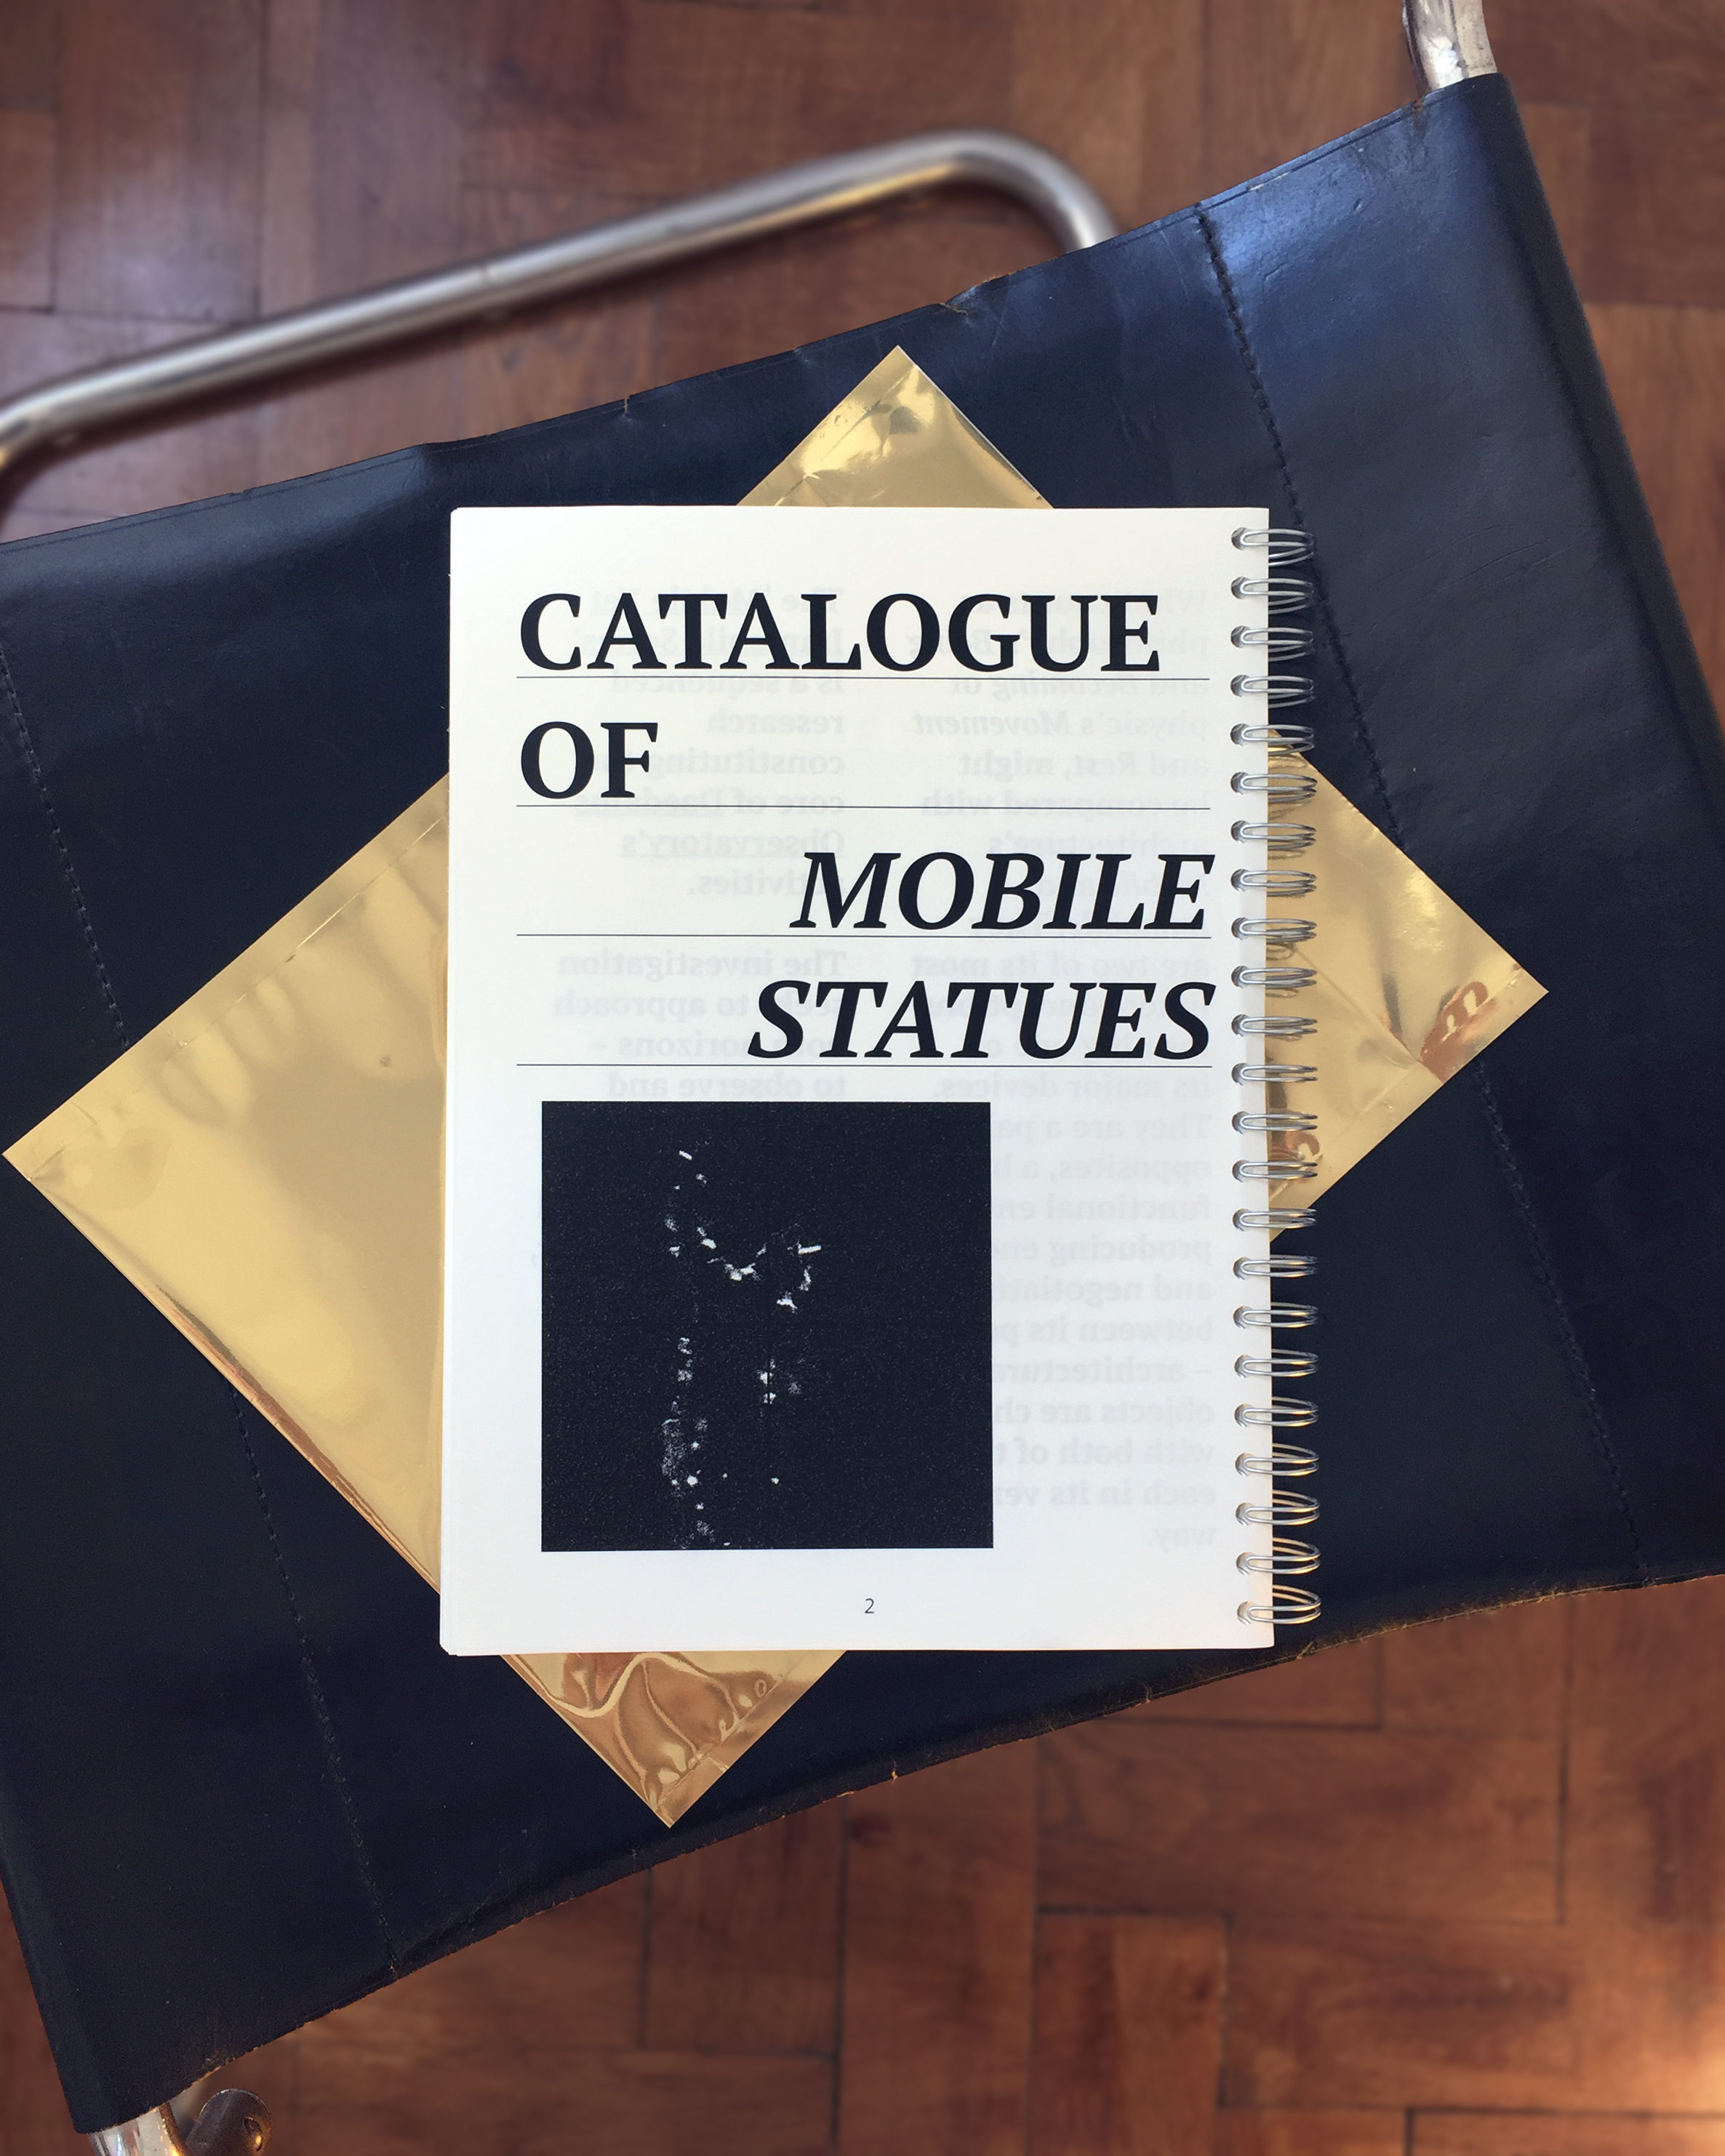 Daedalus Observatory's second volume in the Mobile Yet Immobile Series is out now!  Have a look:  http://www.attp.tuwien.ac.at/mobile-yet-immobile